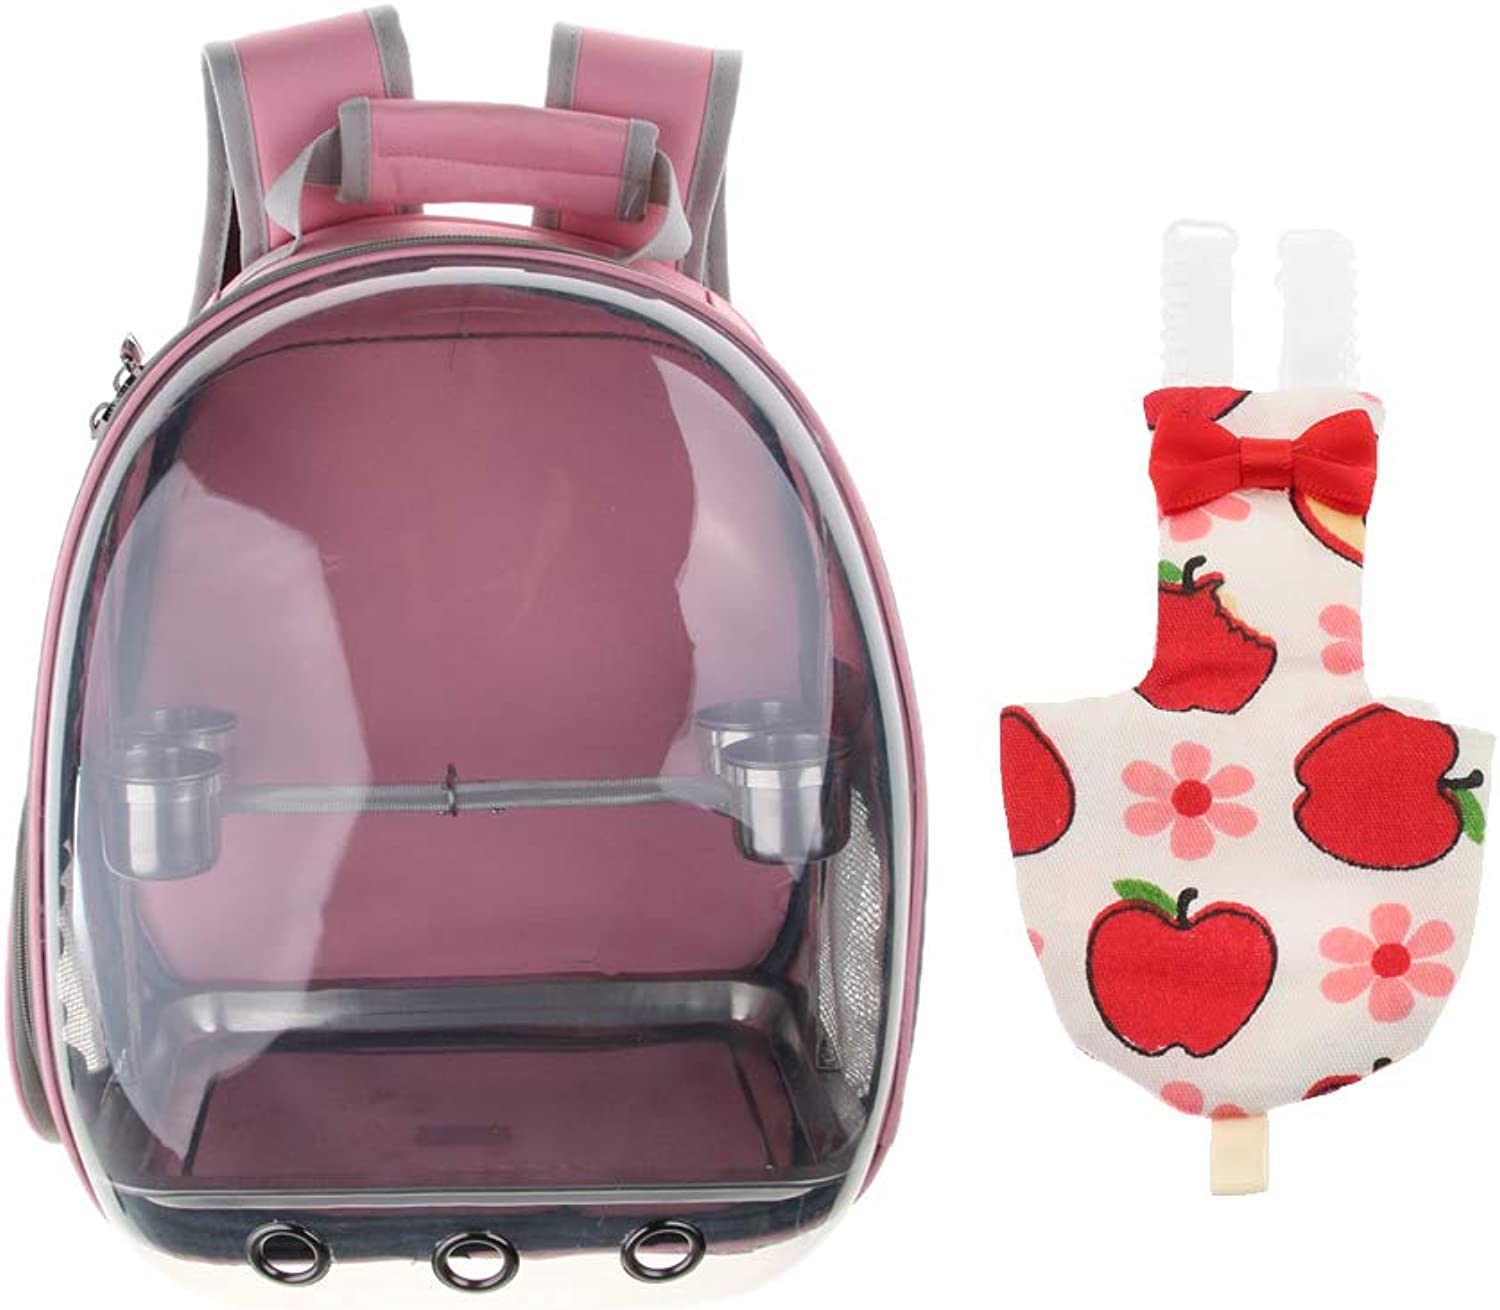 FLAMEER Parred Outdoor Pink Breathable Capsule Backpack & Safe Soft Parred Nappy Diaper(L)